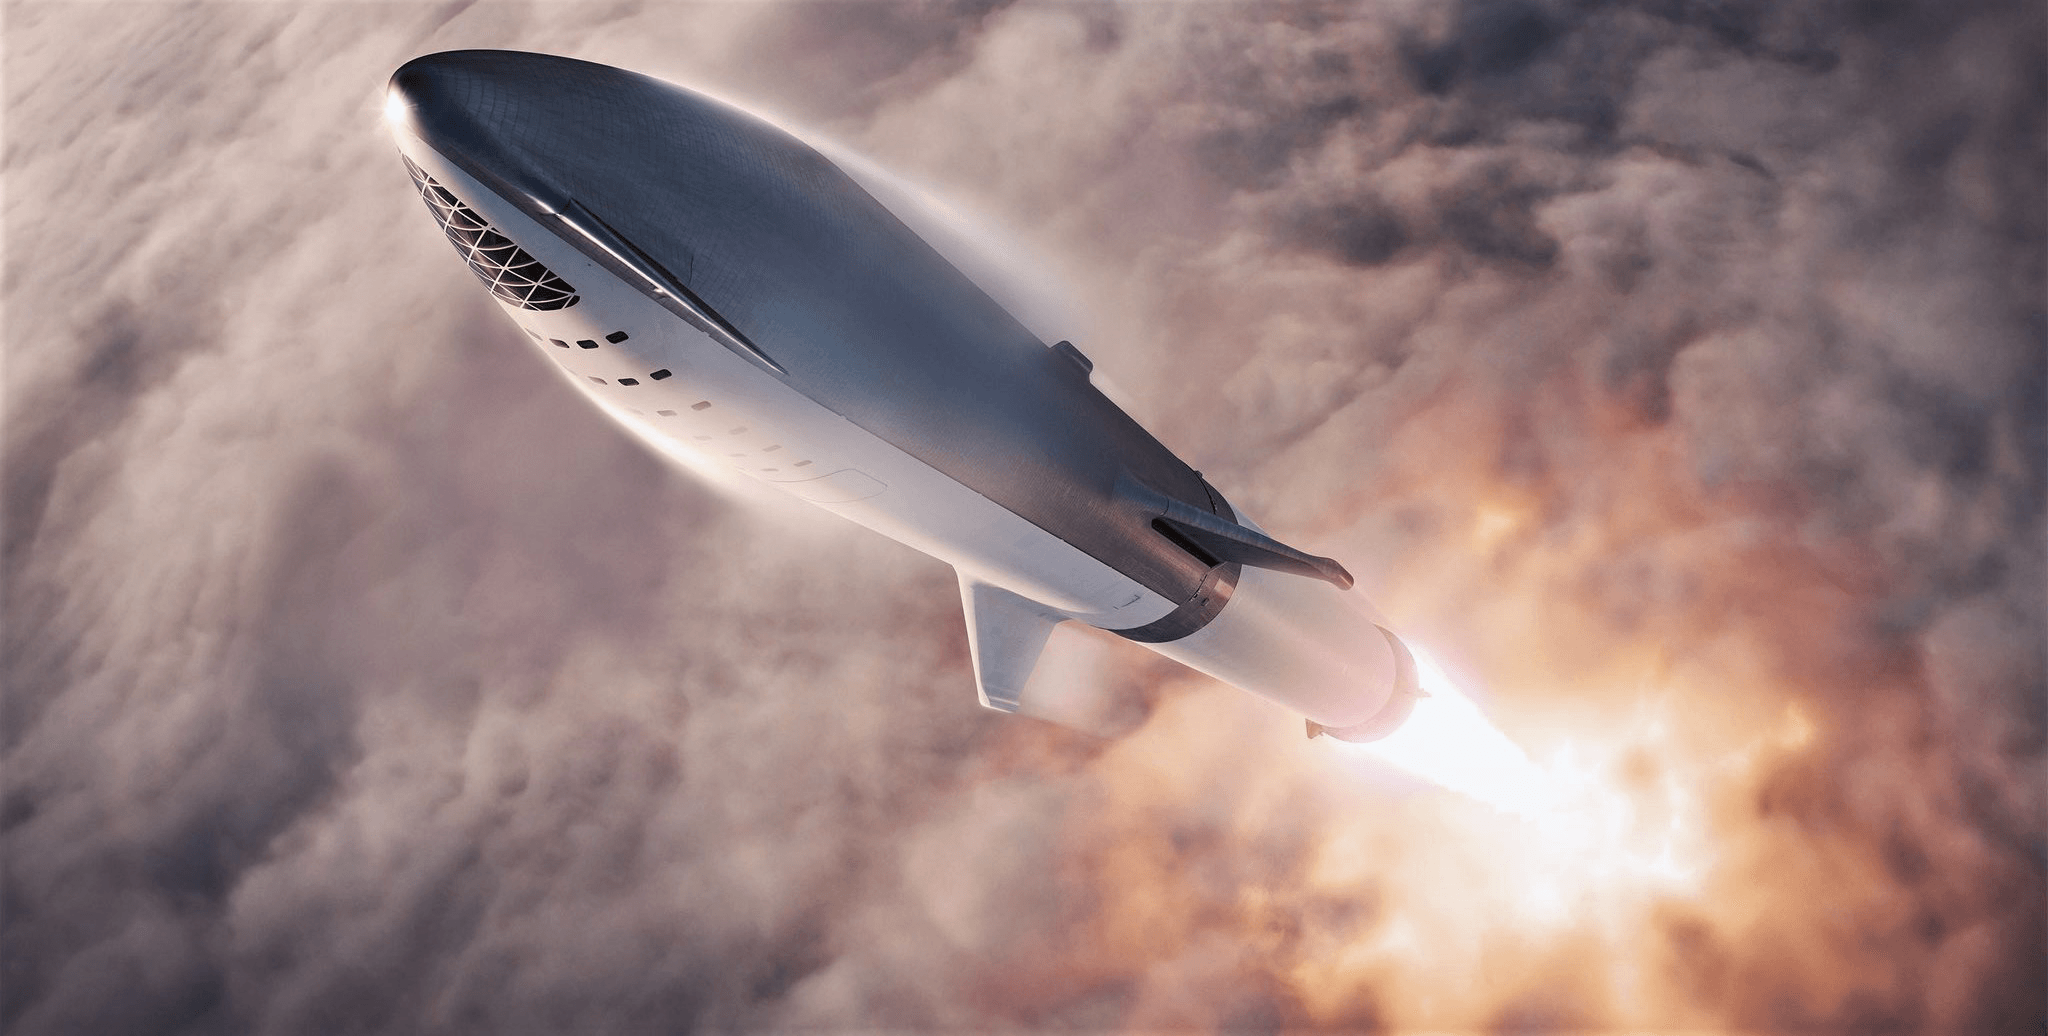 Spacex S Bfr Rocket And Spaceship Look More Real Than Ever In New 4k Renders Spacex Spacex Starship Starship